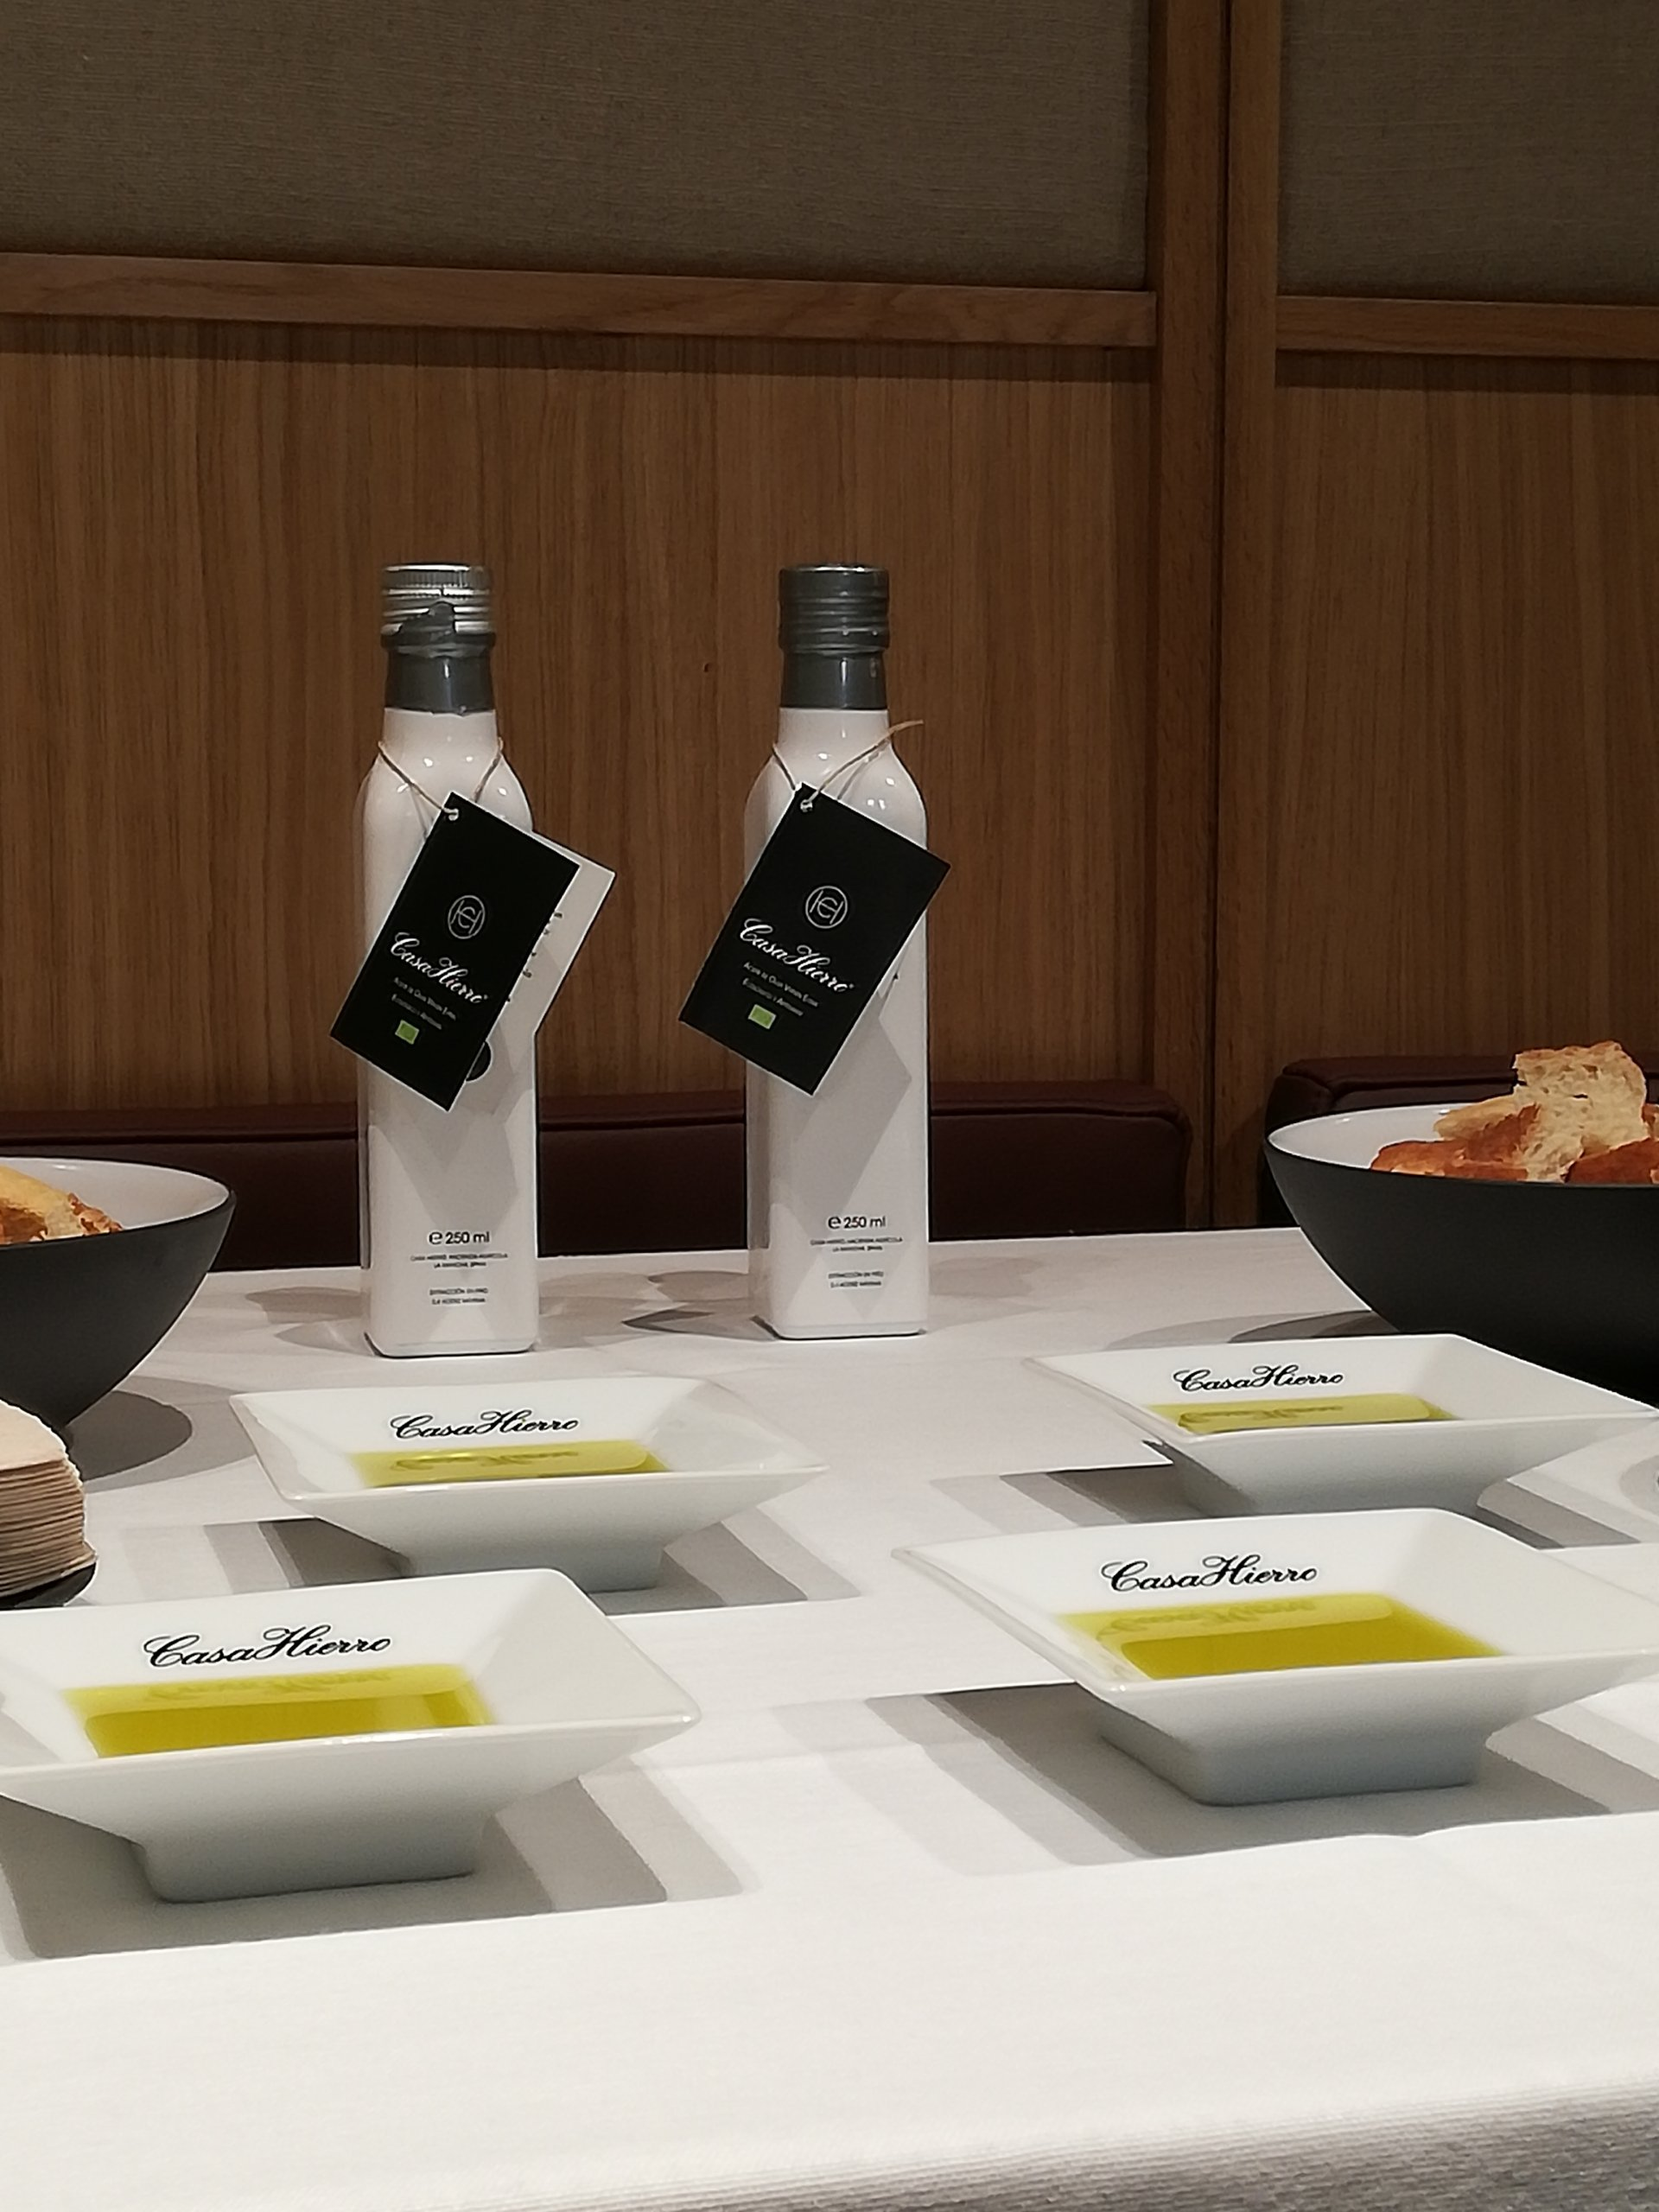 World Olive Day: celebrations at Casa Hierro, the Aove brand